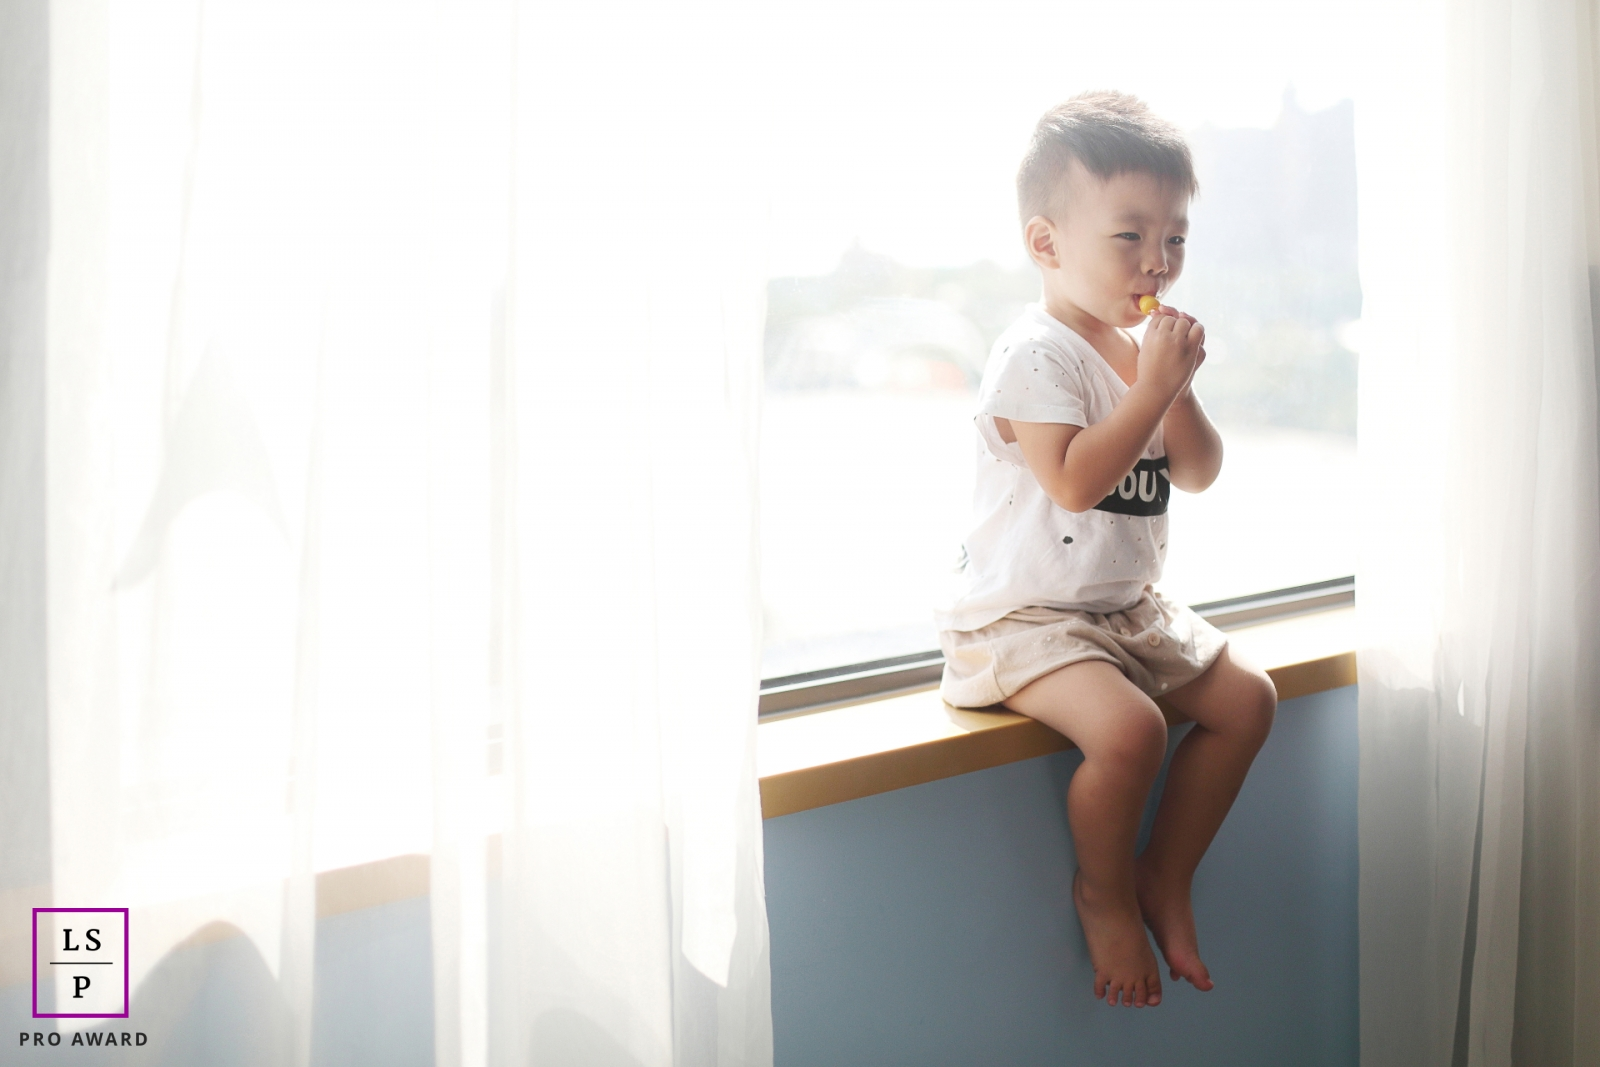 Eric Liao is a lifestyle photographer from